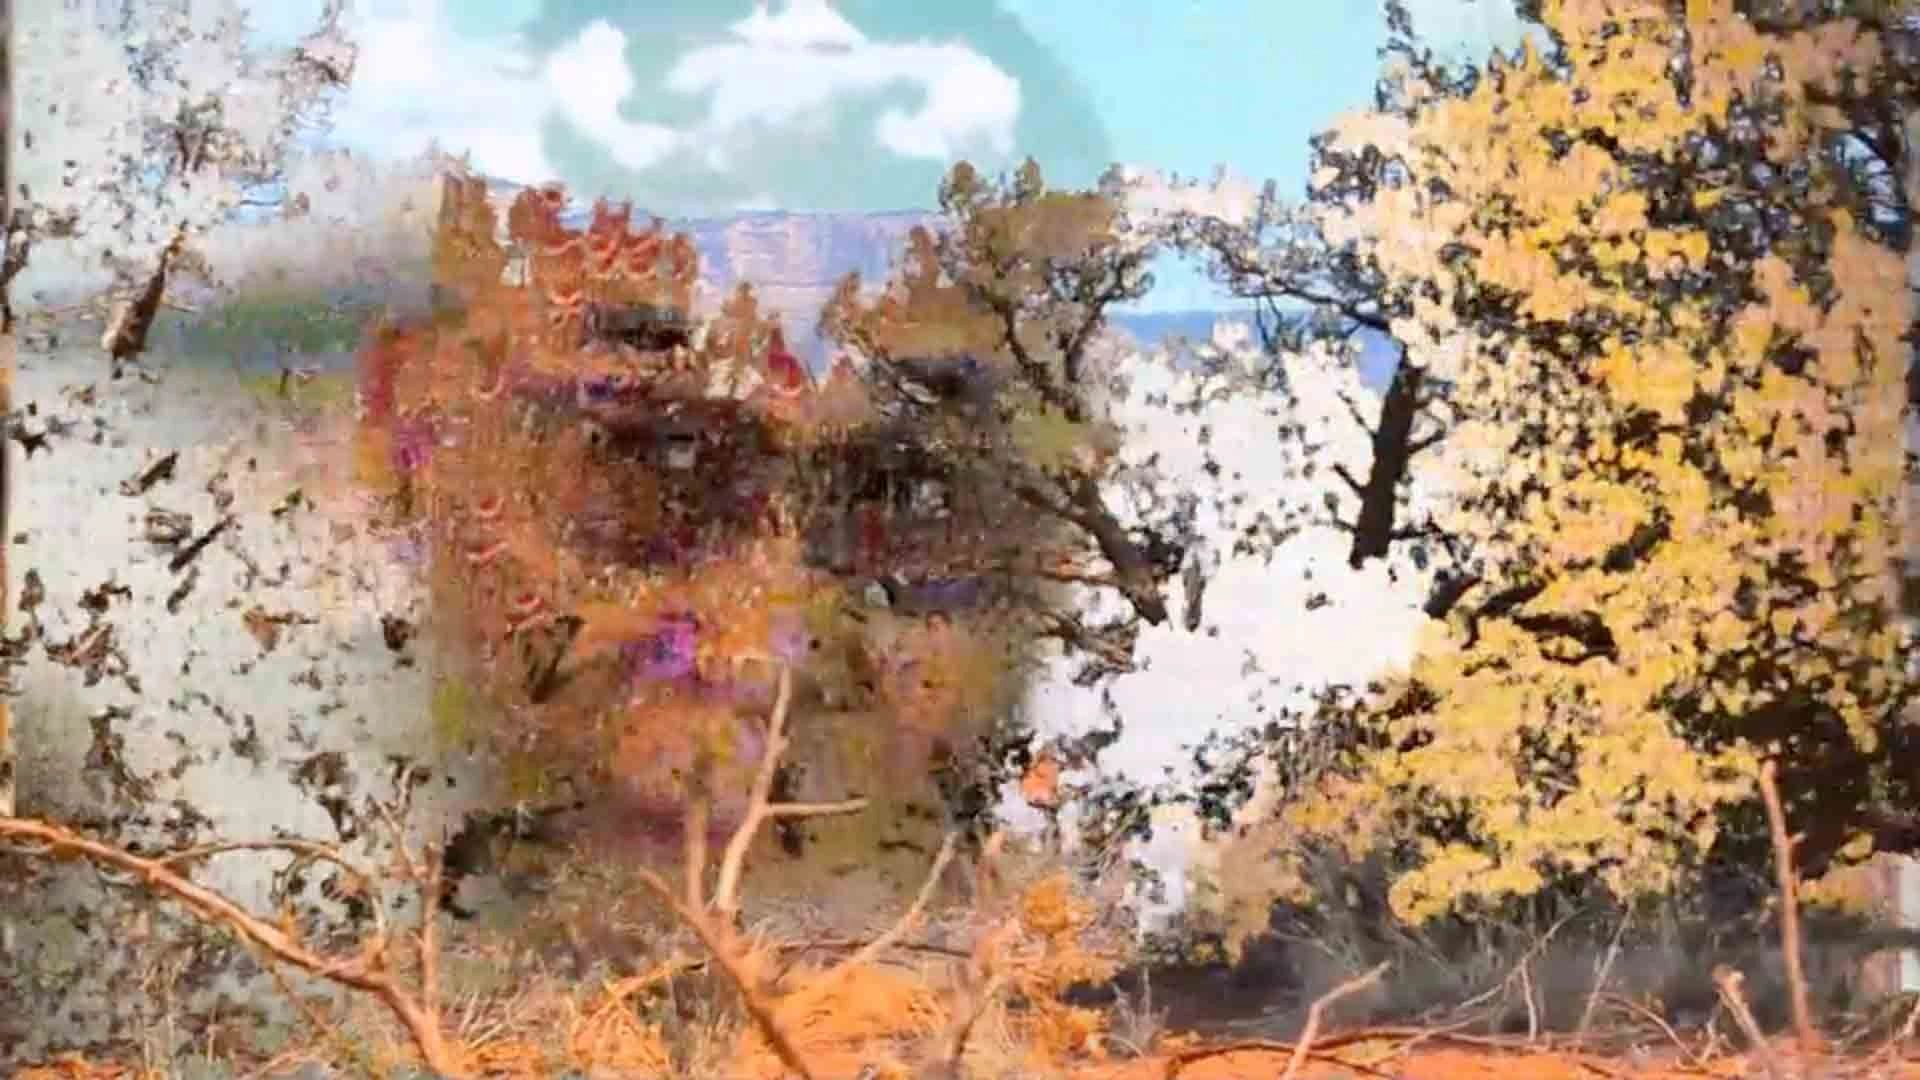 Inspirational art film featuring the Dali Lama depicting his open mind.